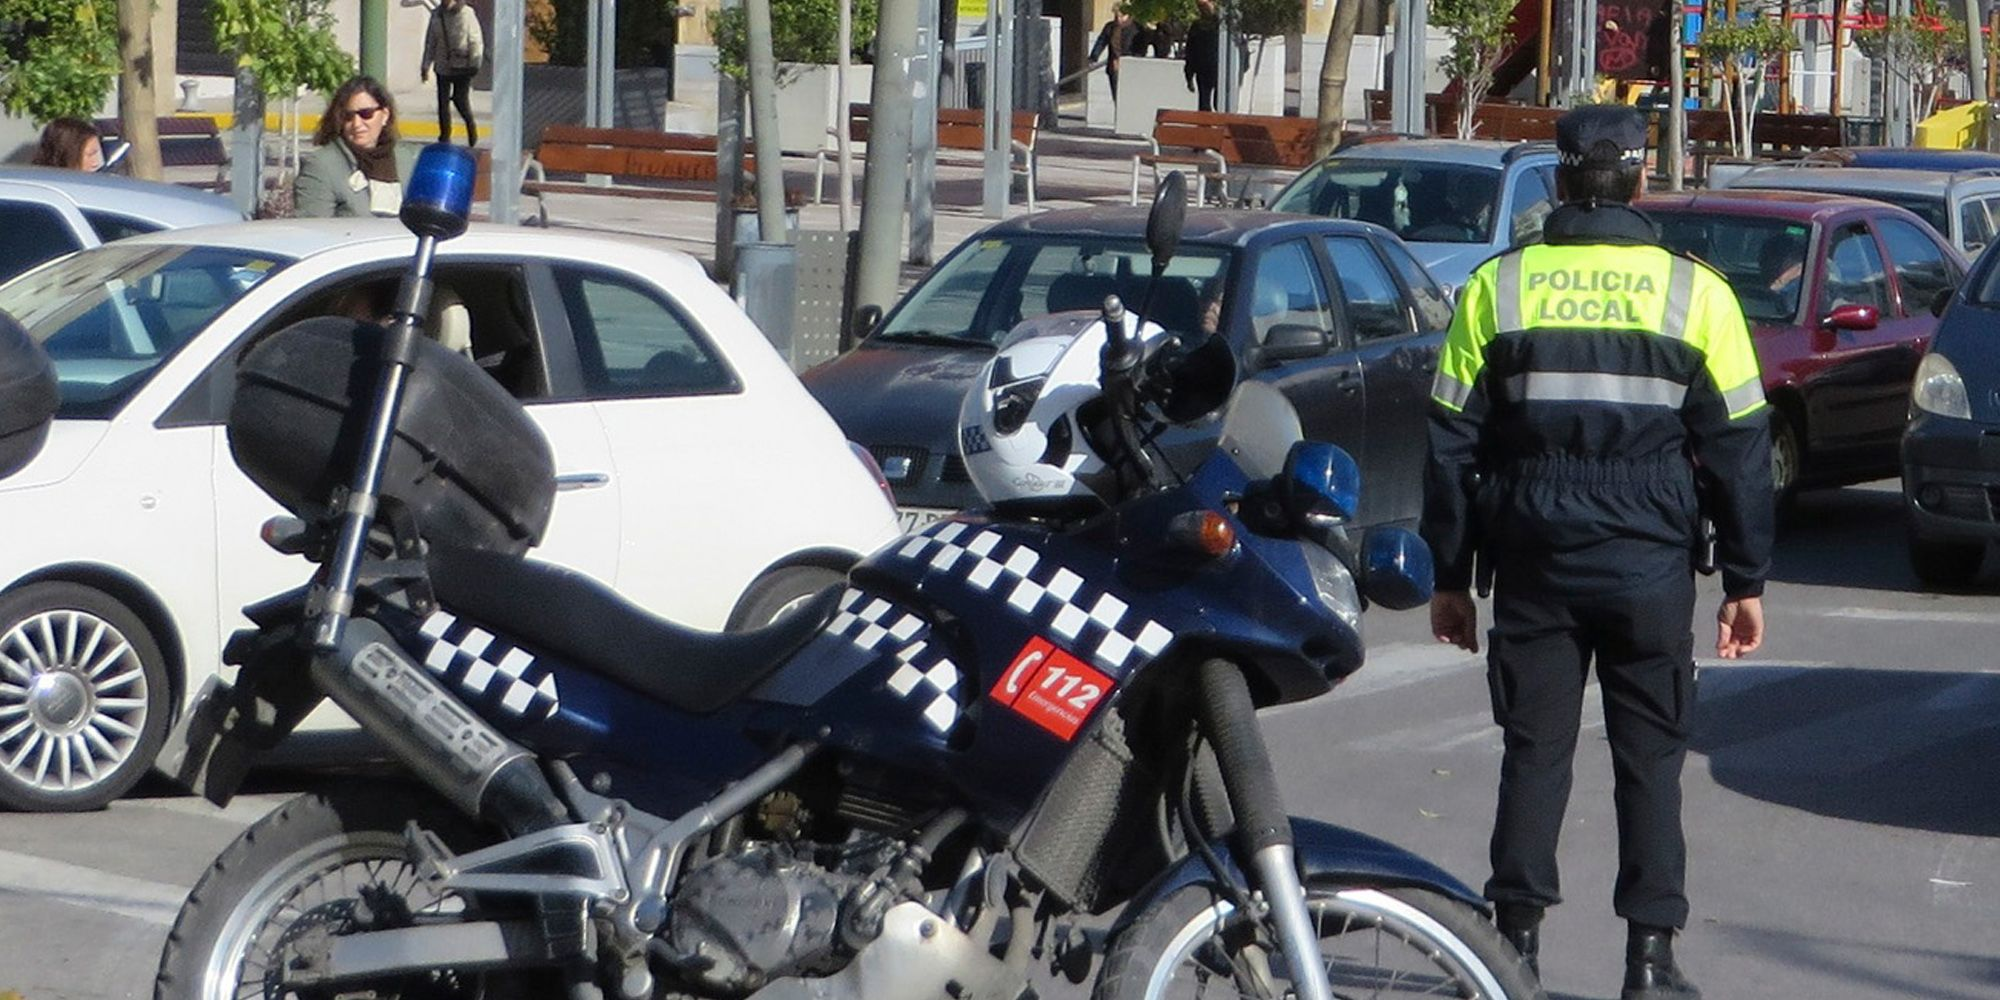 Policia Local Jerez